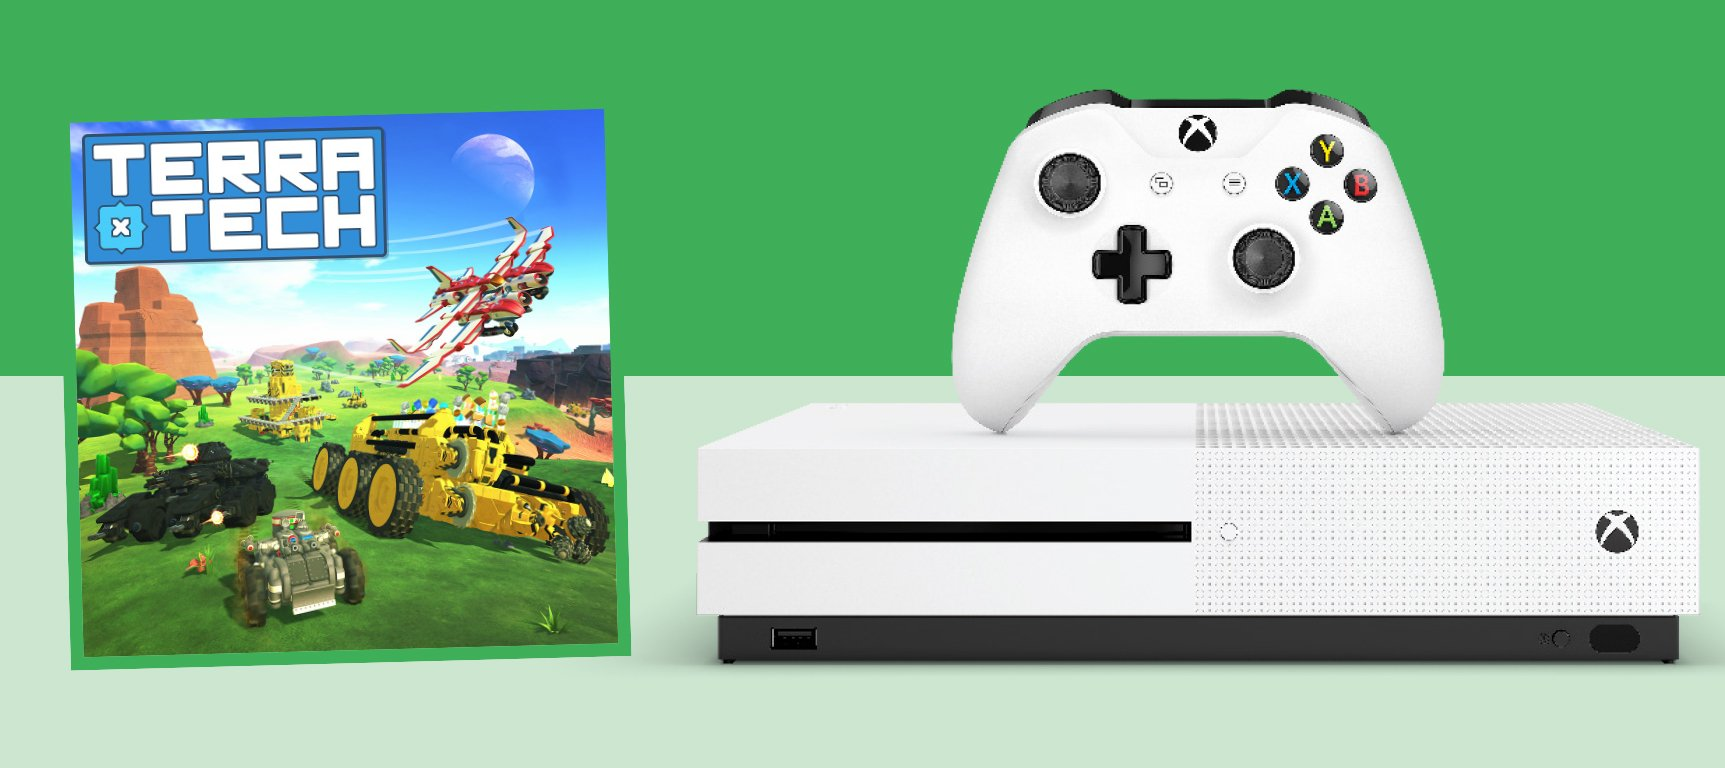 An XBOX ONE S and TerraTech Game